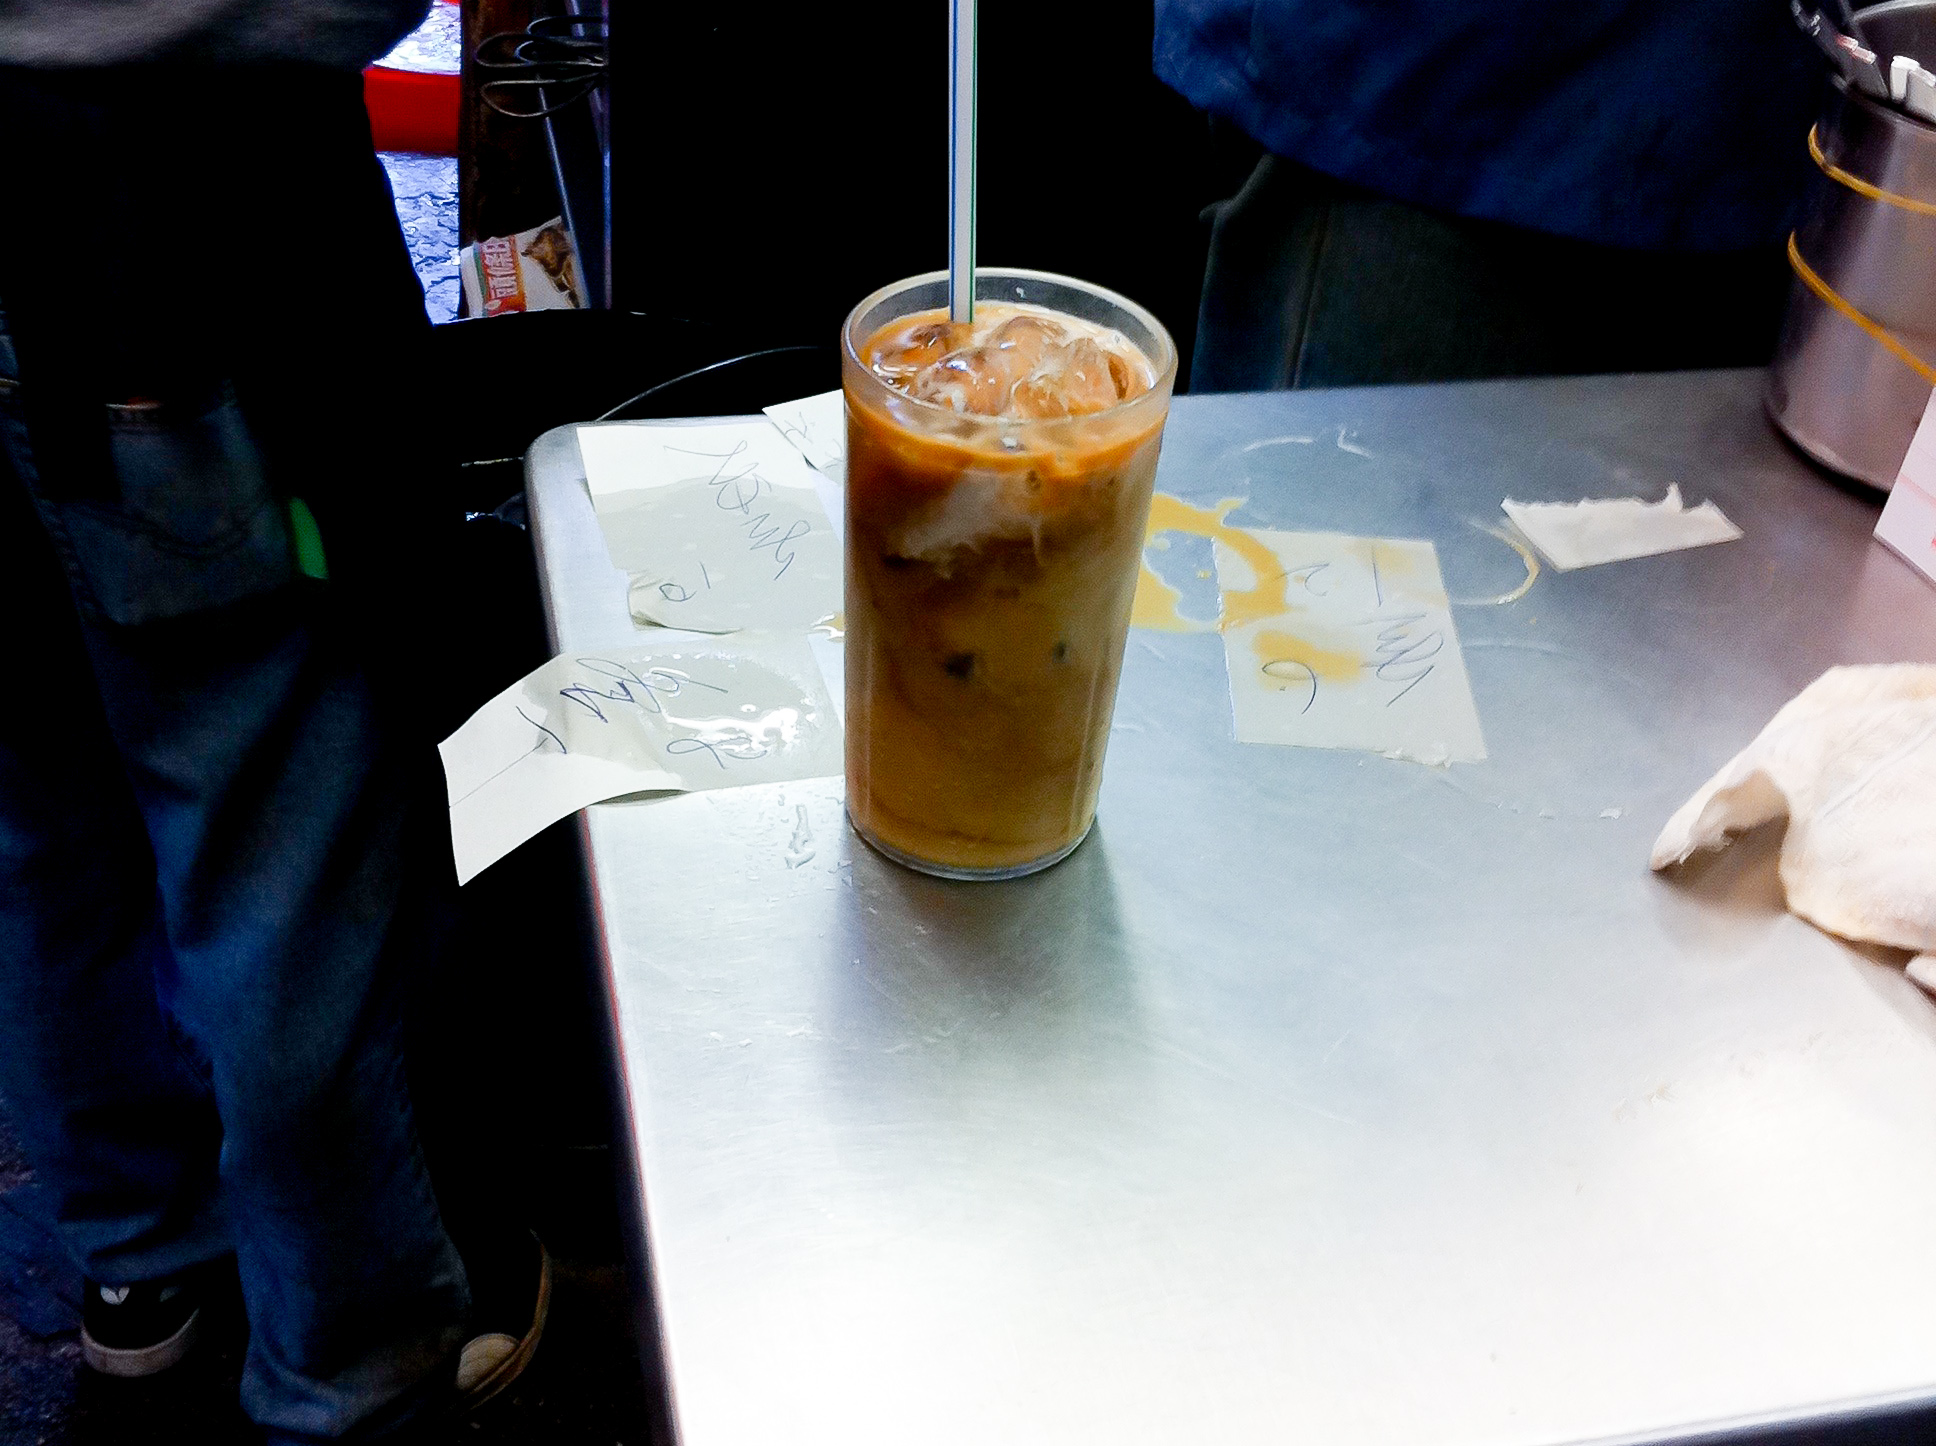 Hong Kong style milk tea at Lan Fong Yuen in Hong Kong. Photo by alphacityguides.